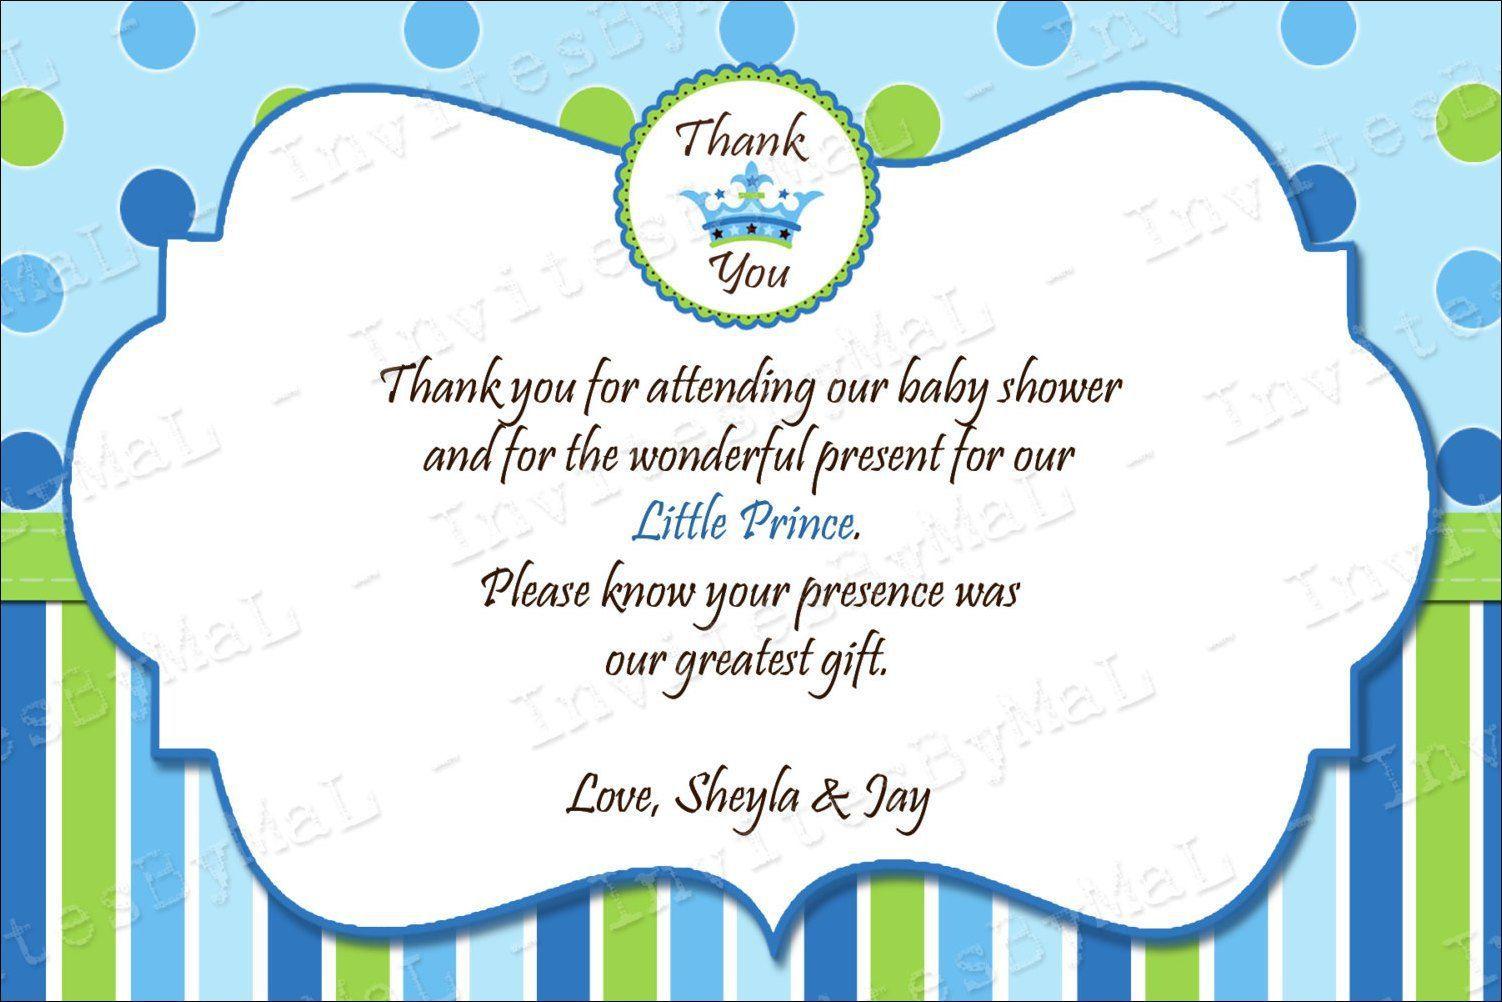 008 Sensational Thank You Card Wording Baby Shower High Definition  Note For Money Someone Who Didn't Attend HostesFull